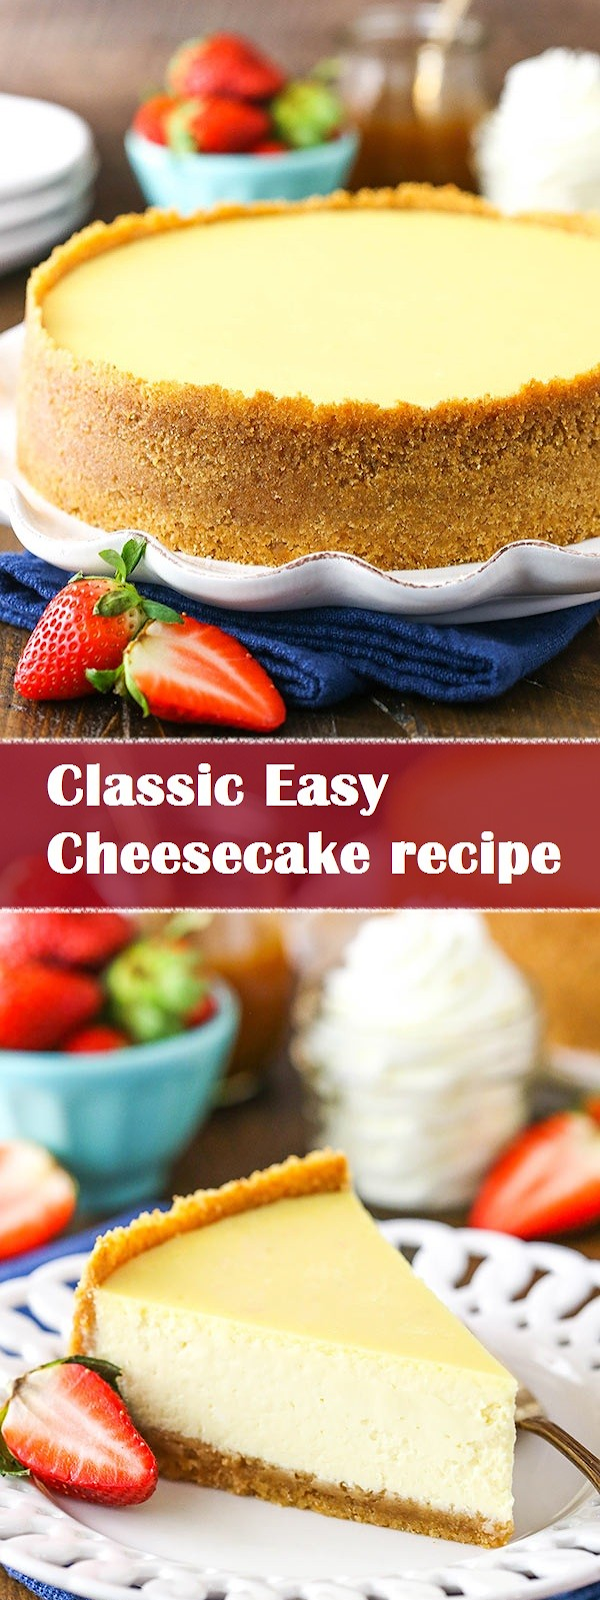 Classic Easy Cheesecake recipe